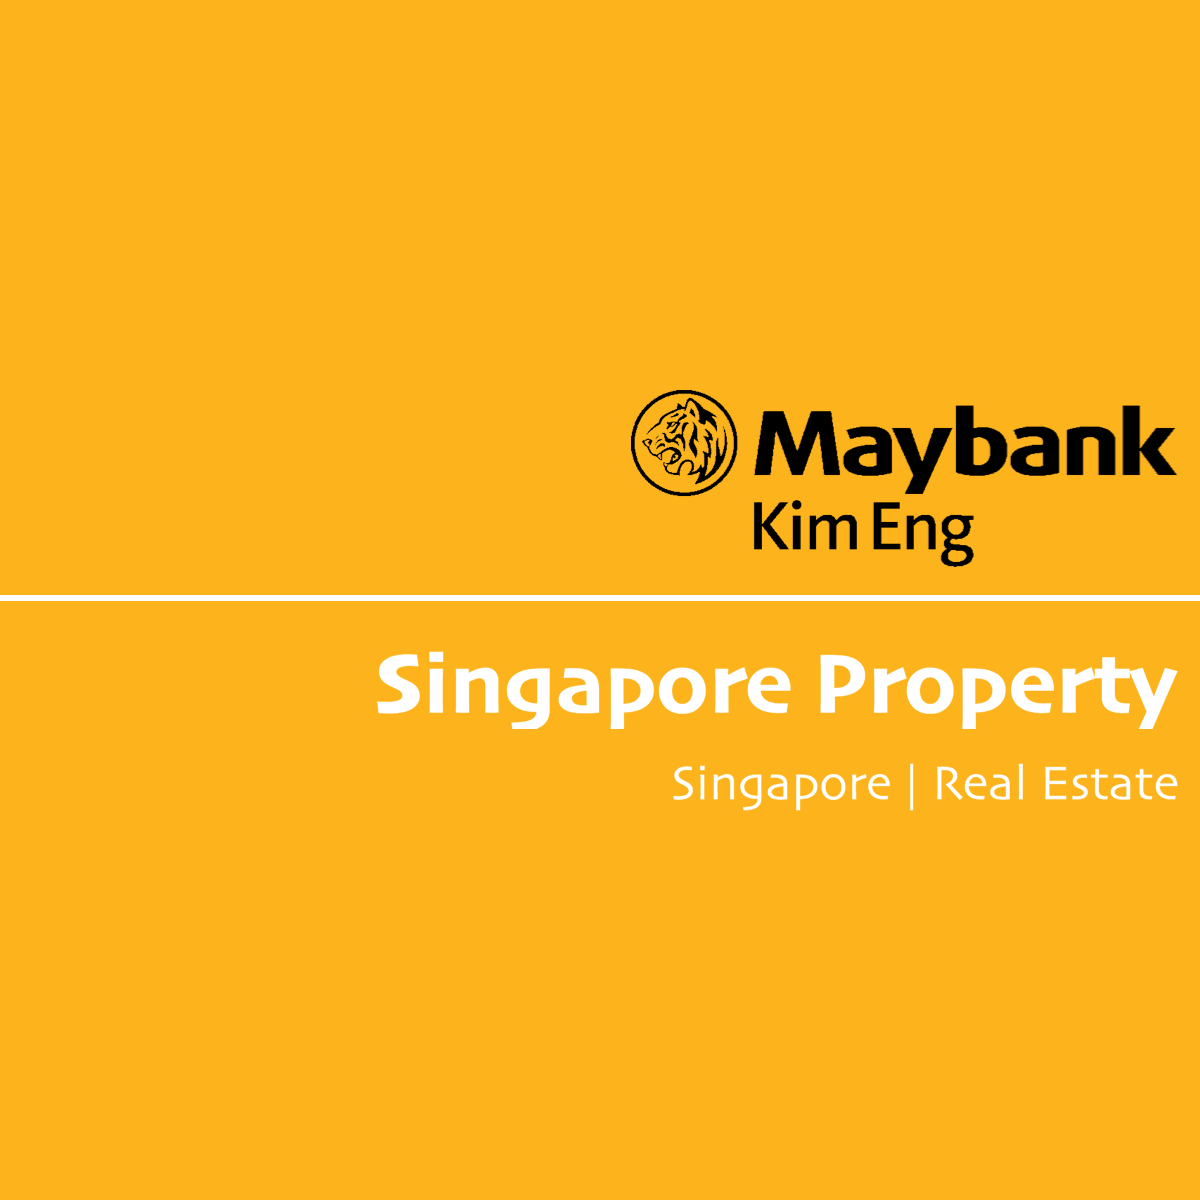 Singapore Property - Maybank Kim Eng 2017-11-16: Three Things To Watch